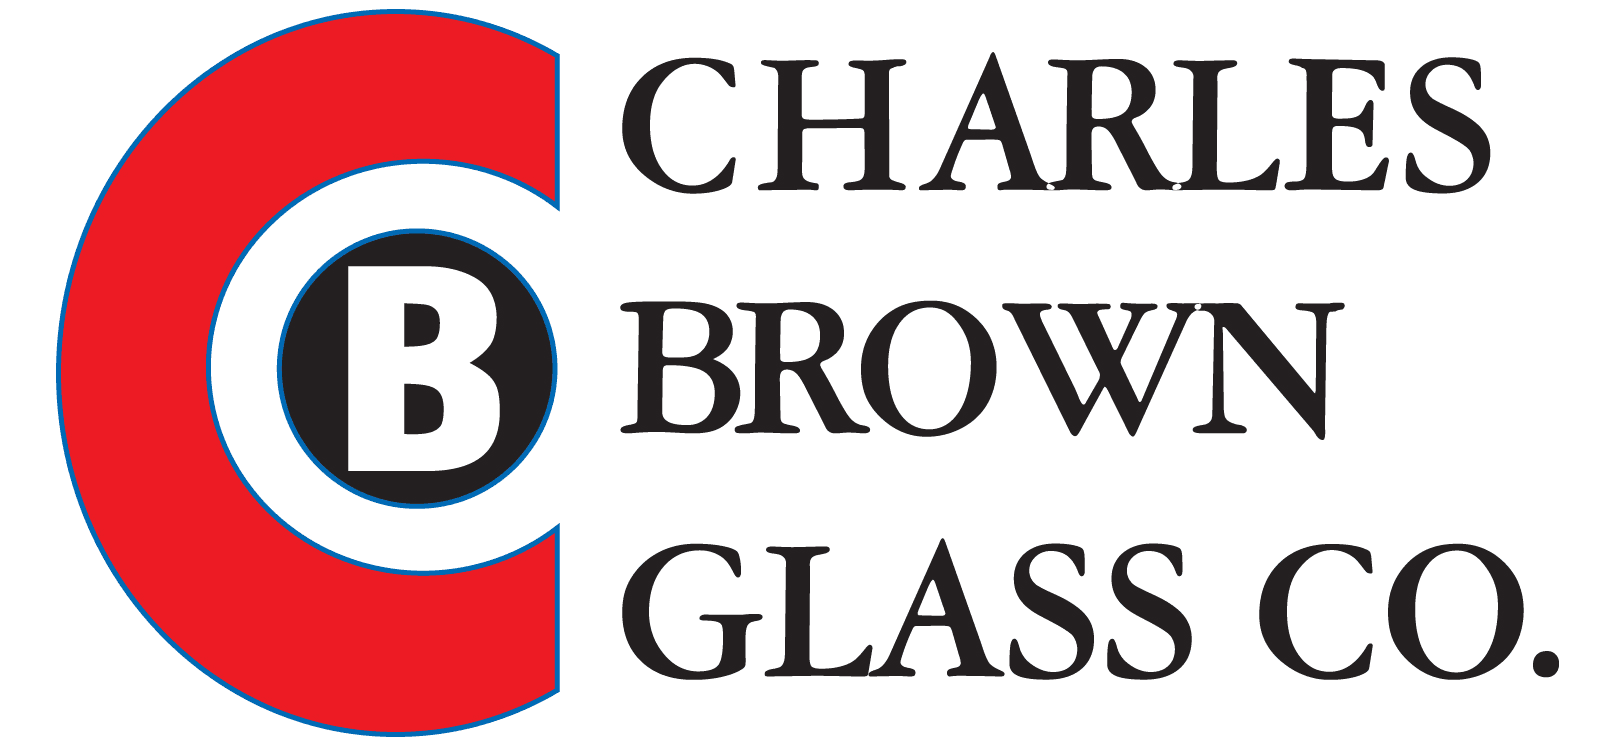 Charles Brown Glass Co. - Logo